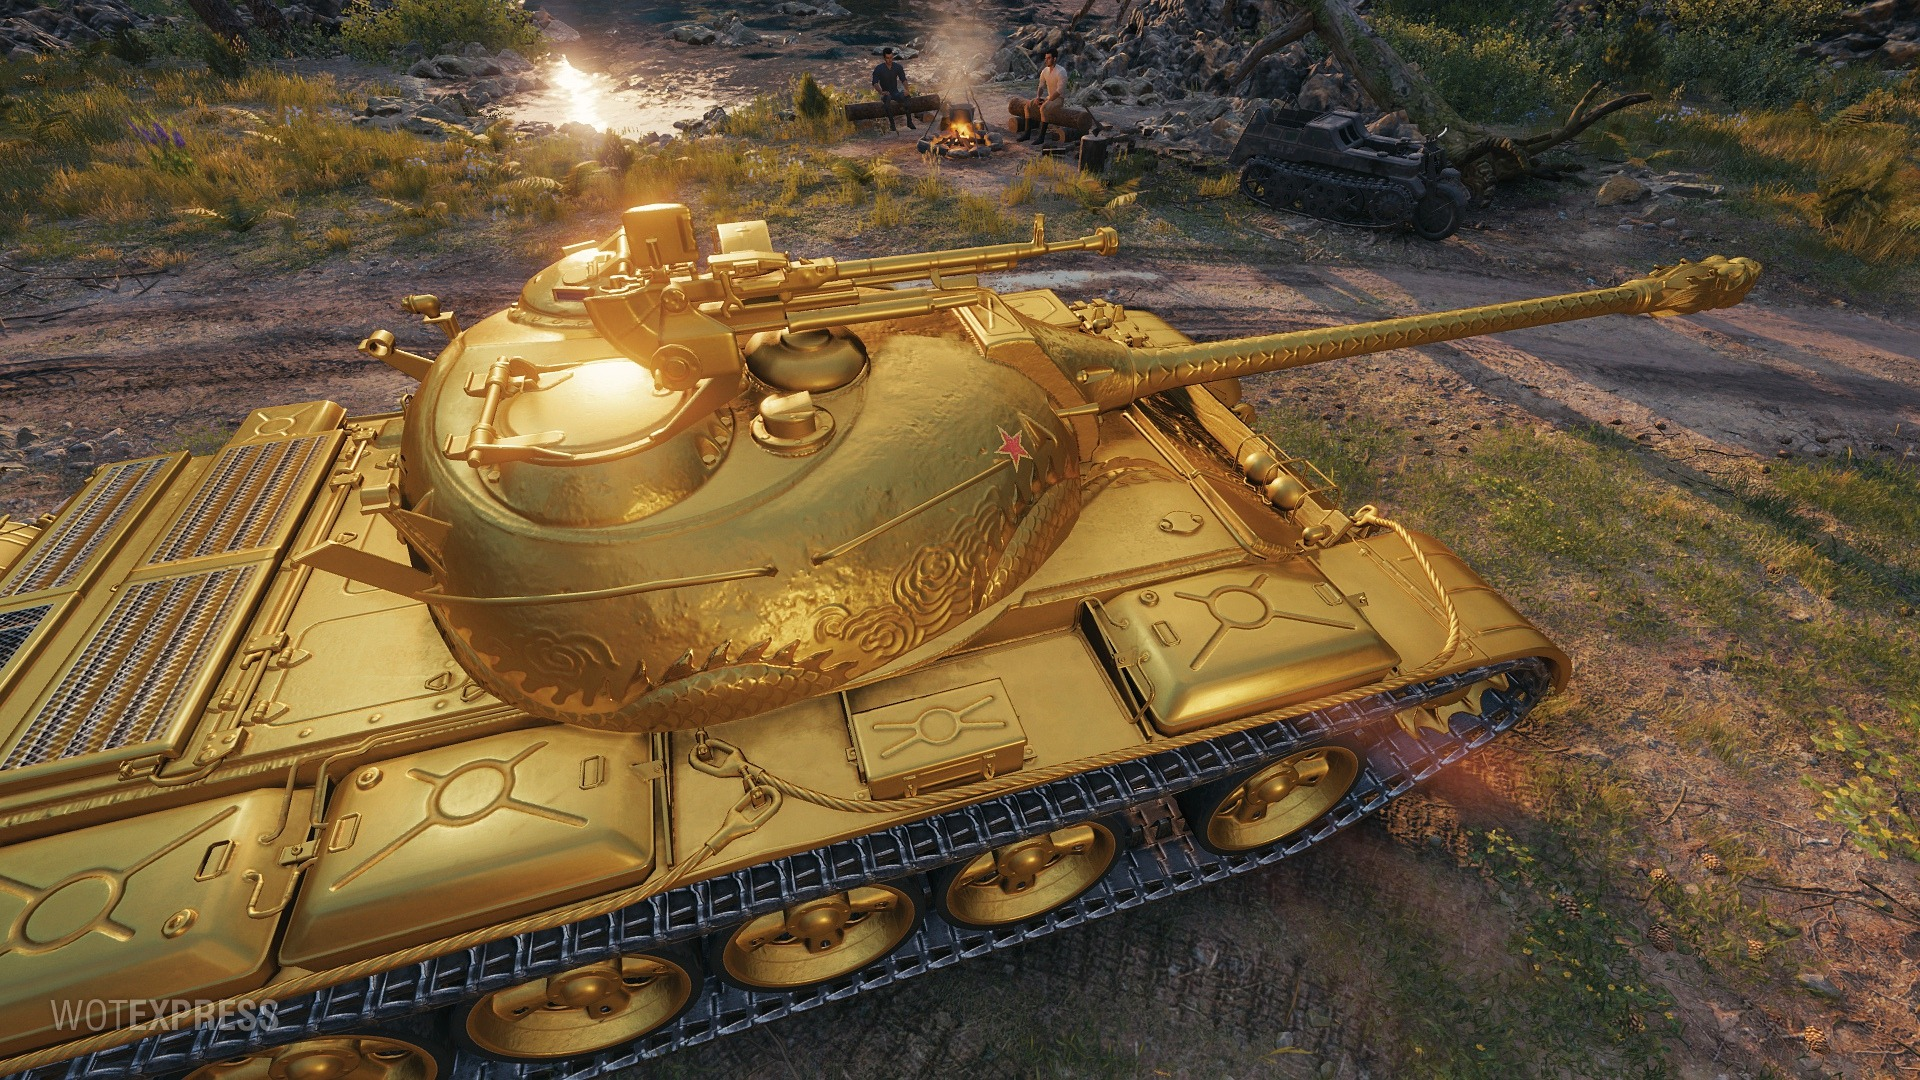 Type 59 Gold Pictures - The Armored Patrol